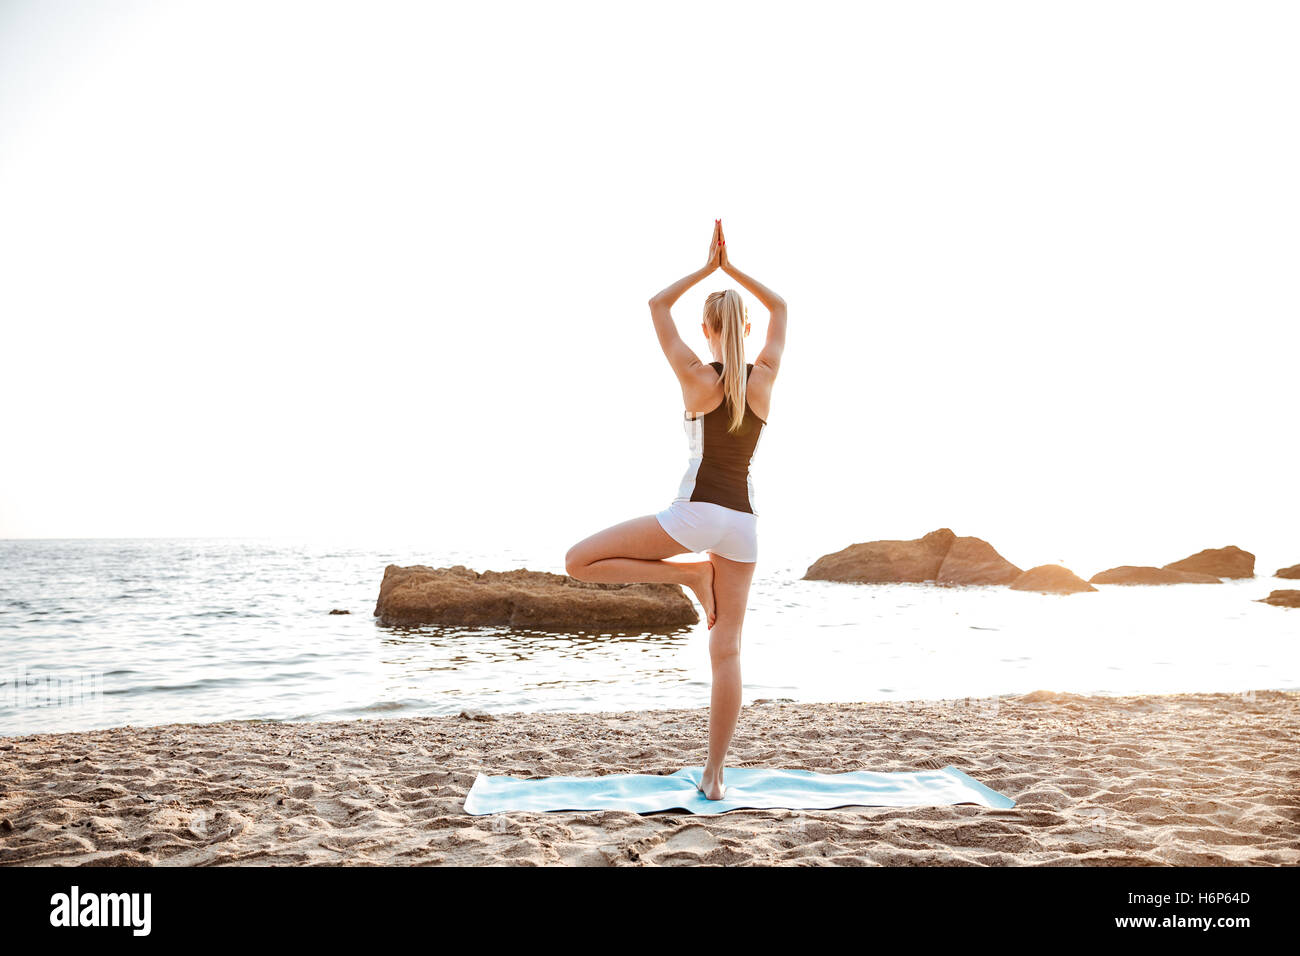 Back view of a young woman standing in yoga pose on one leg on beach - Stock Image